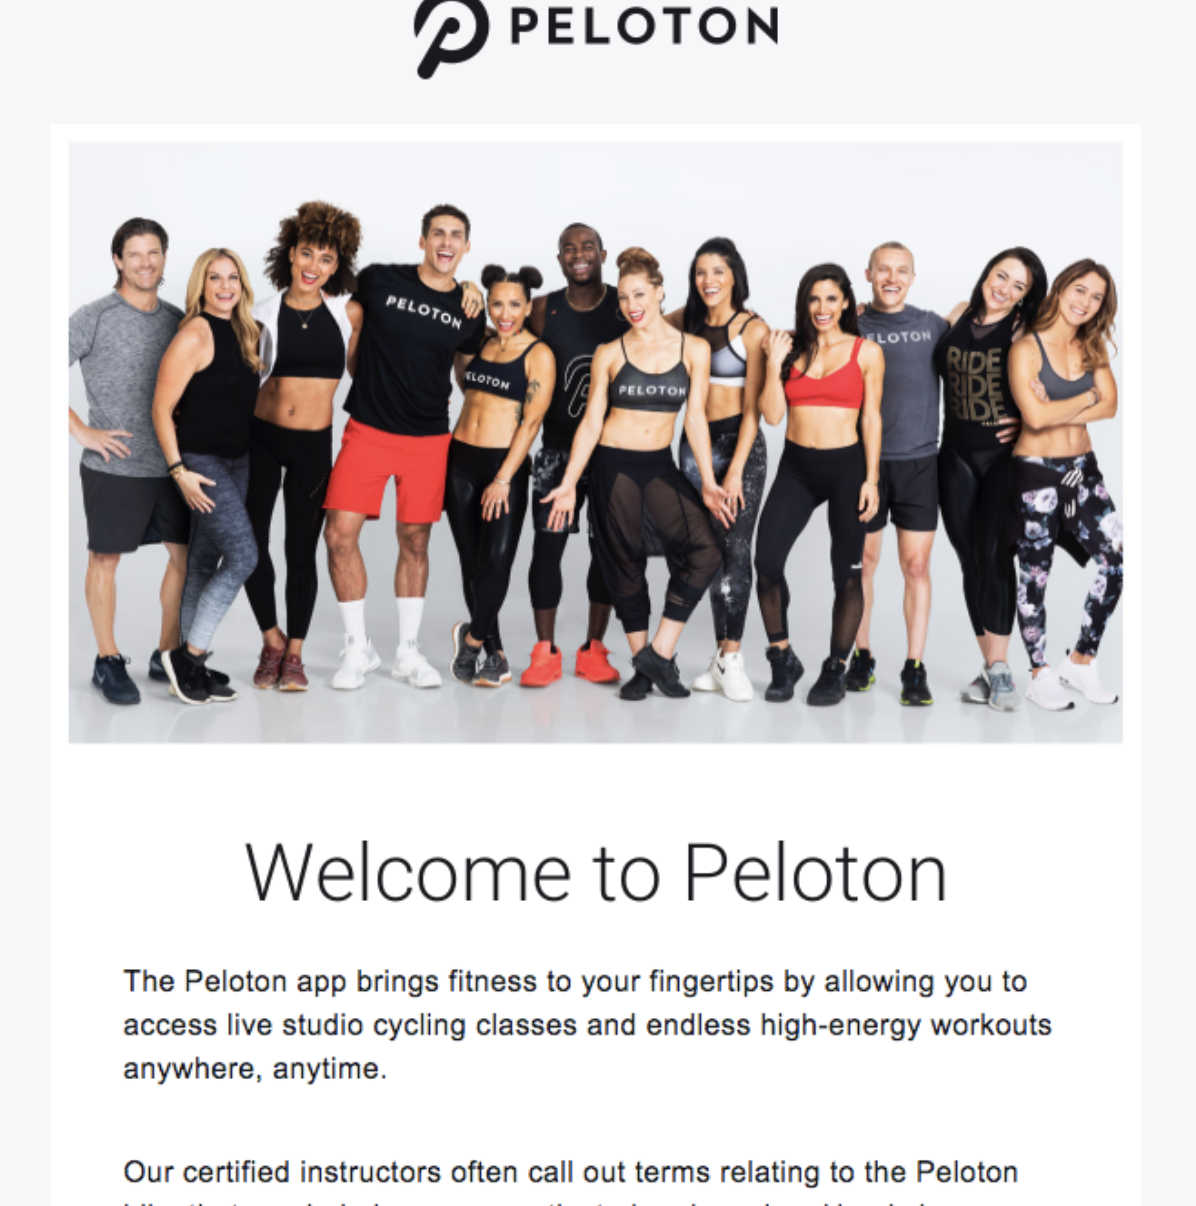 Helping set fitness goals through a welcome email